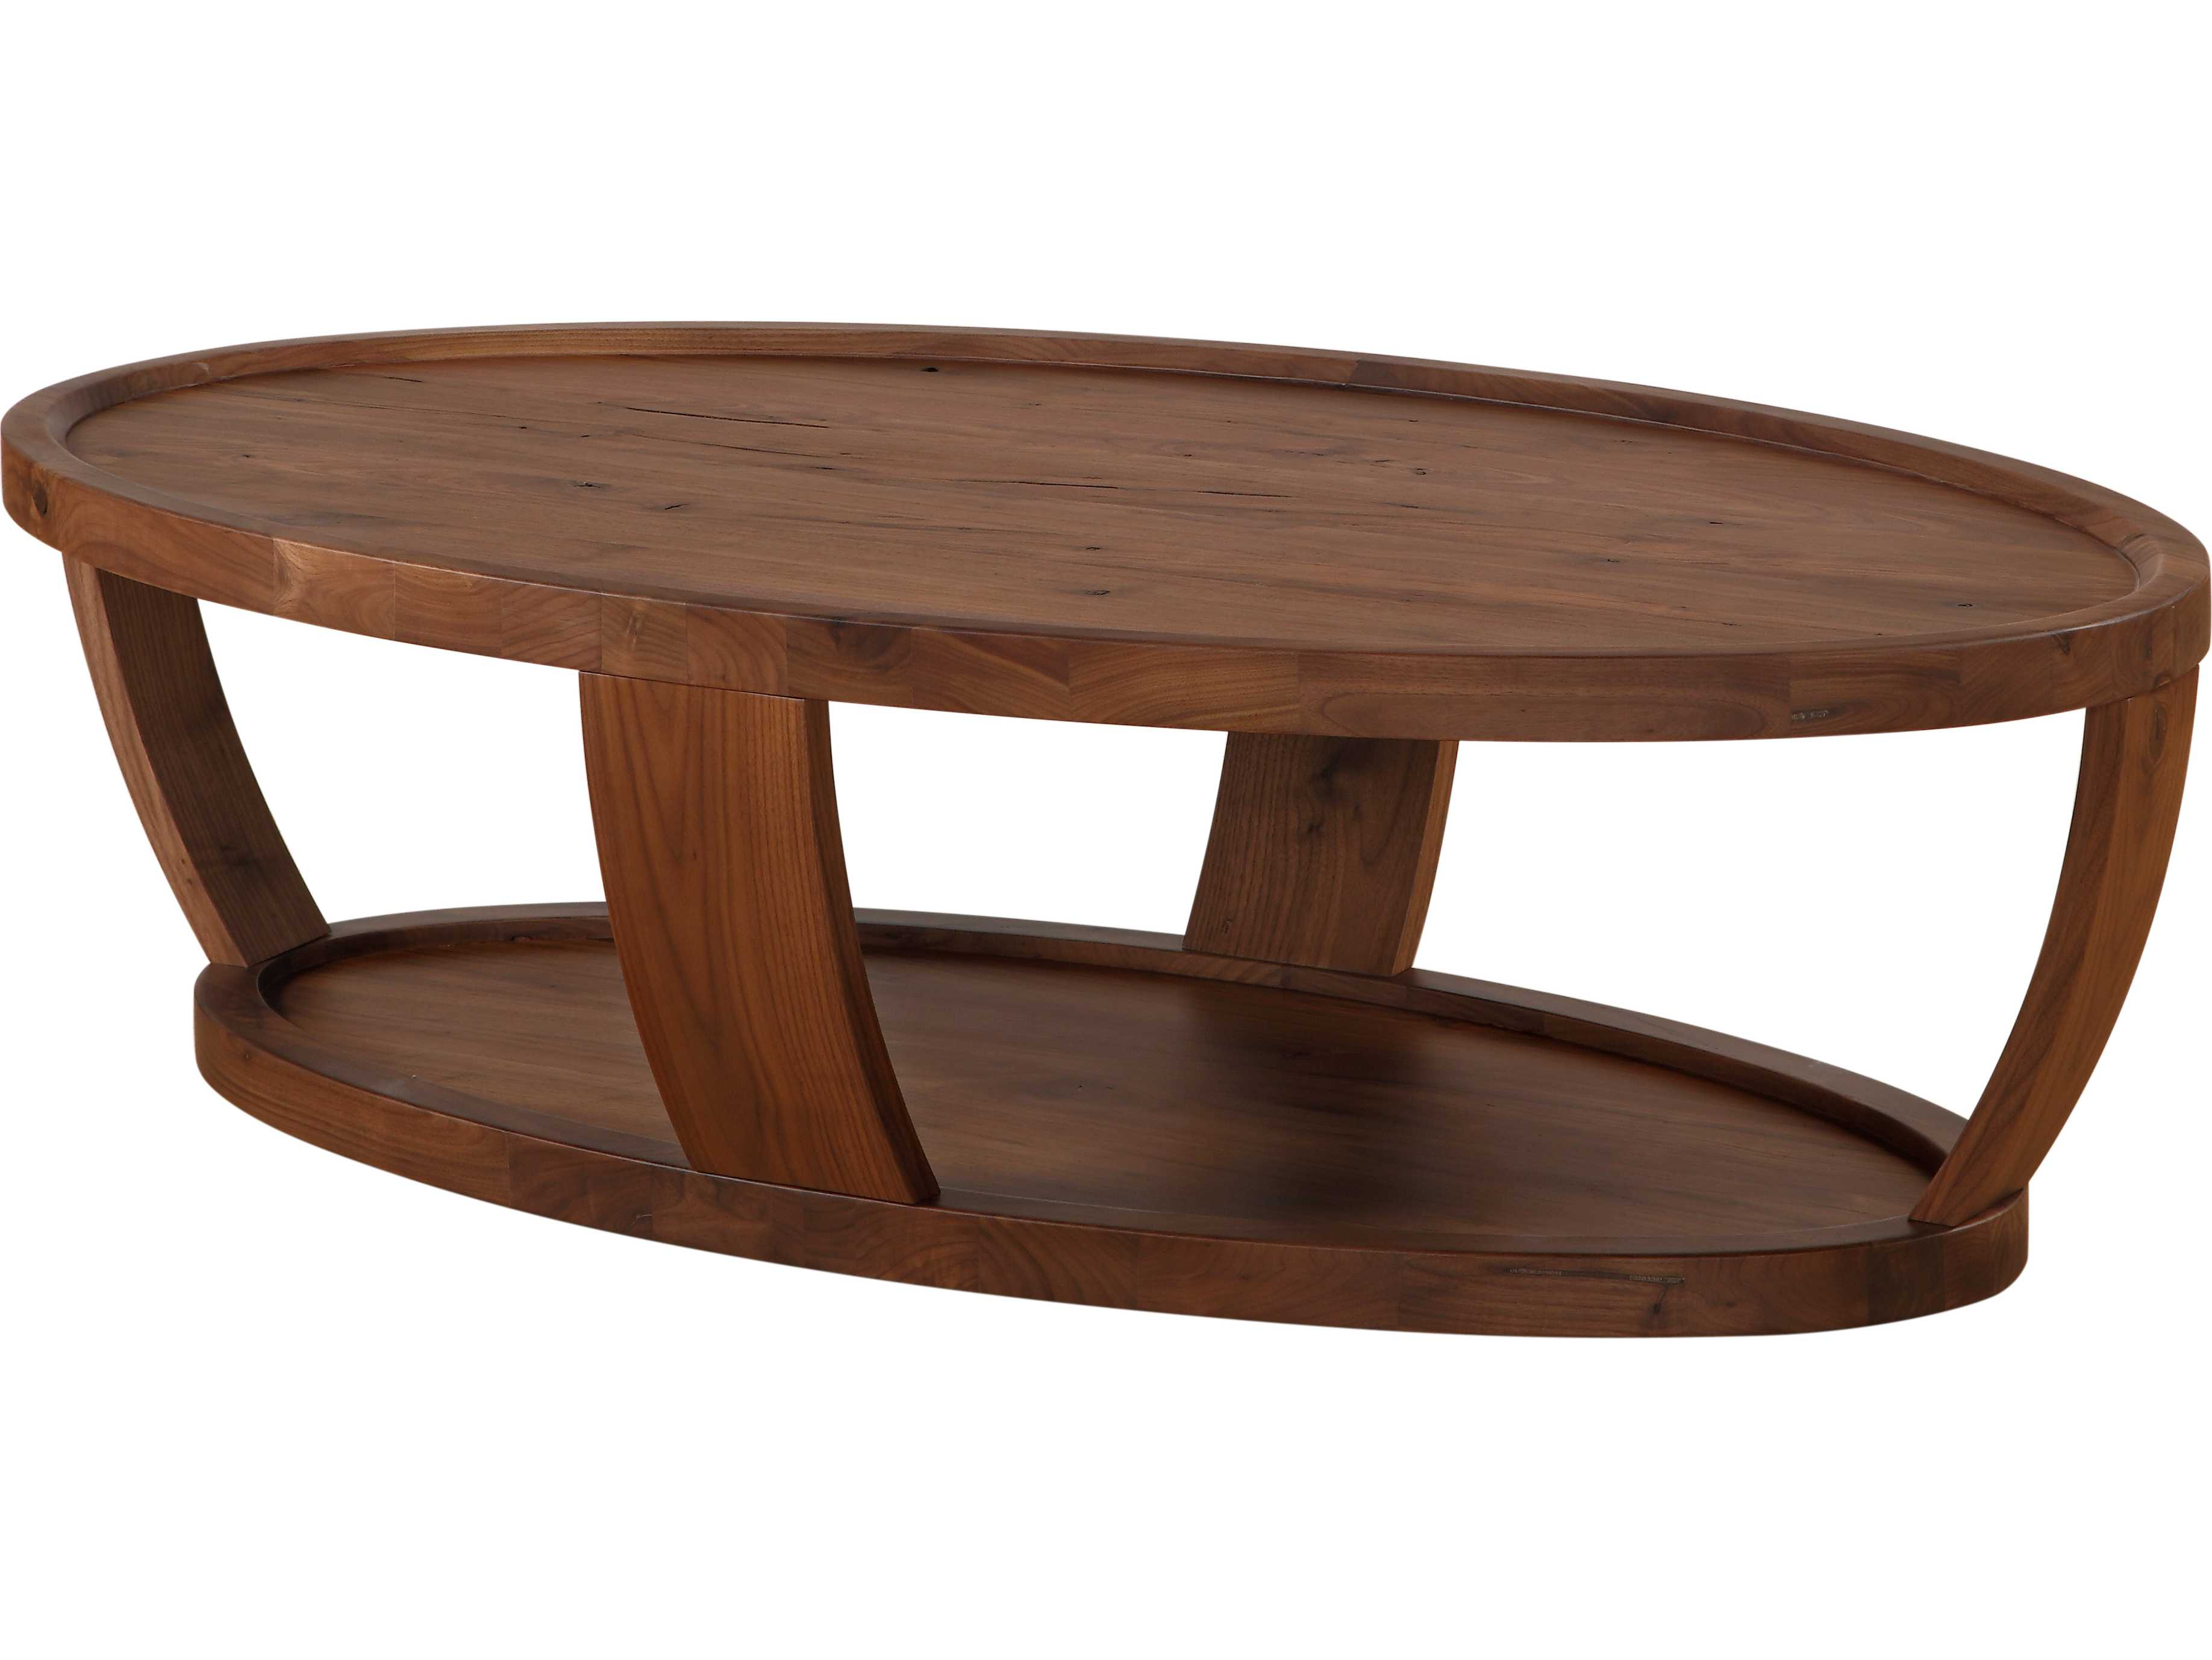 Oval Coffee Table Moe S Home Collection Dylan Rustic Walnut 56 X 30